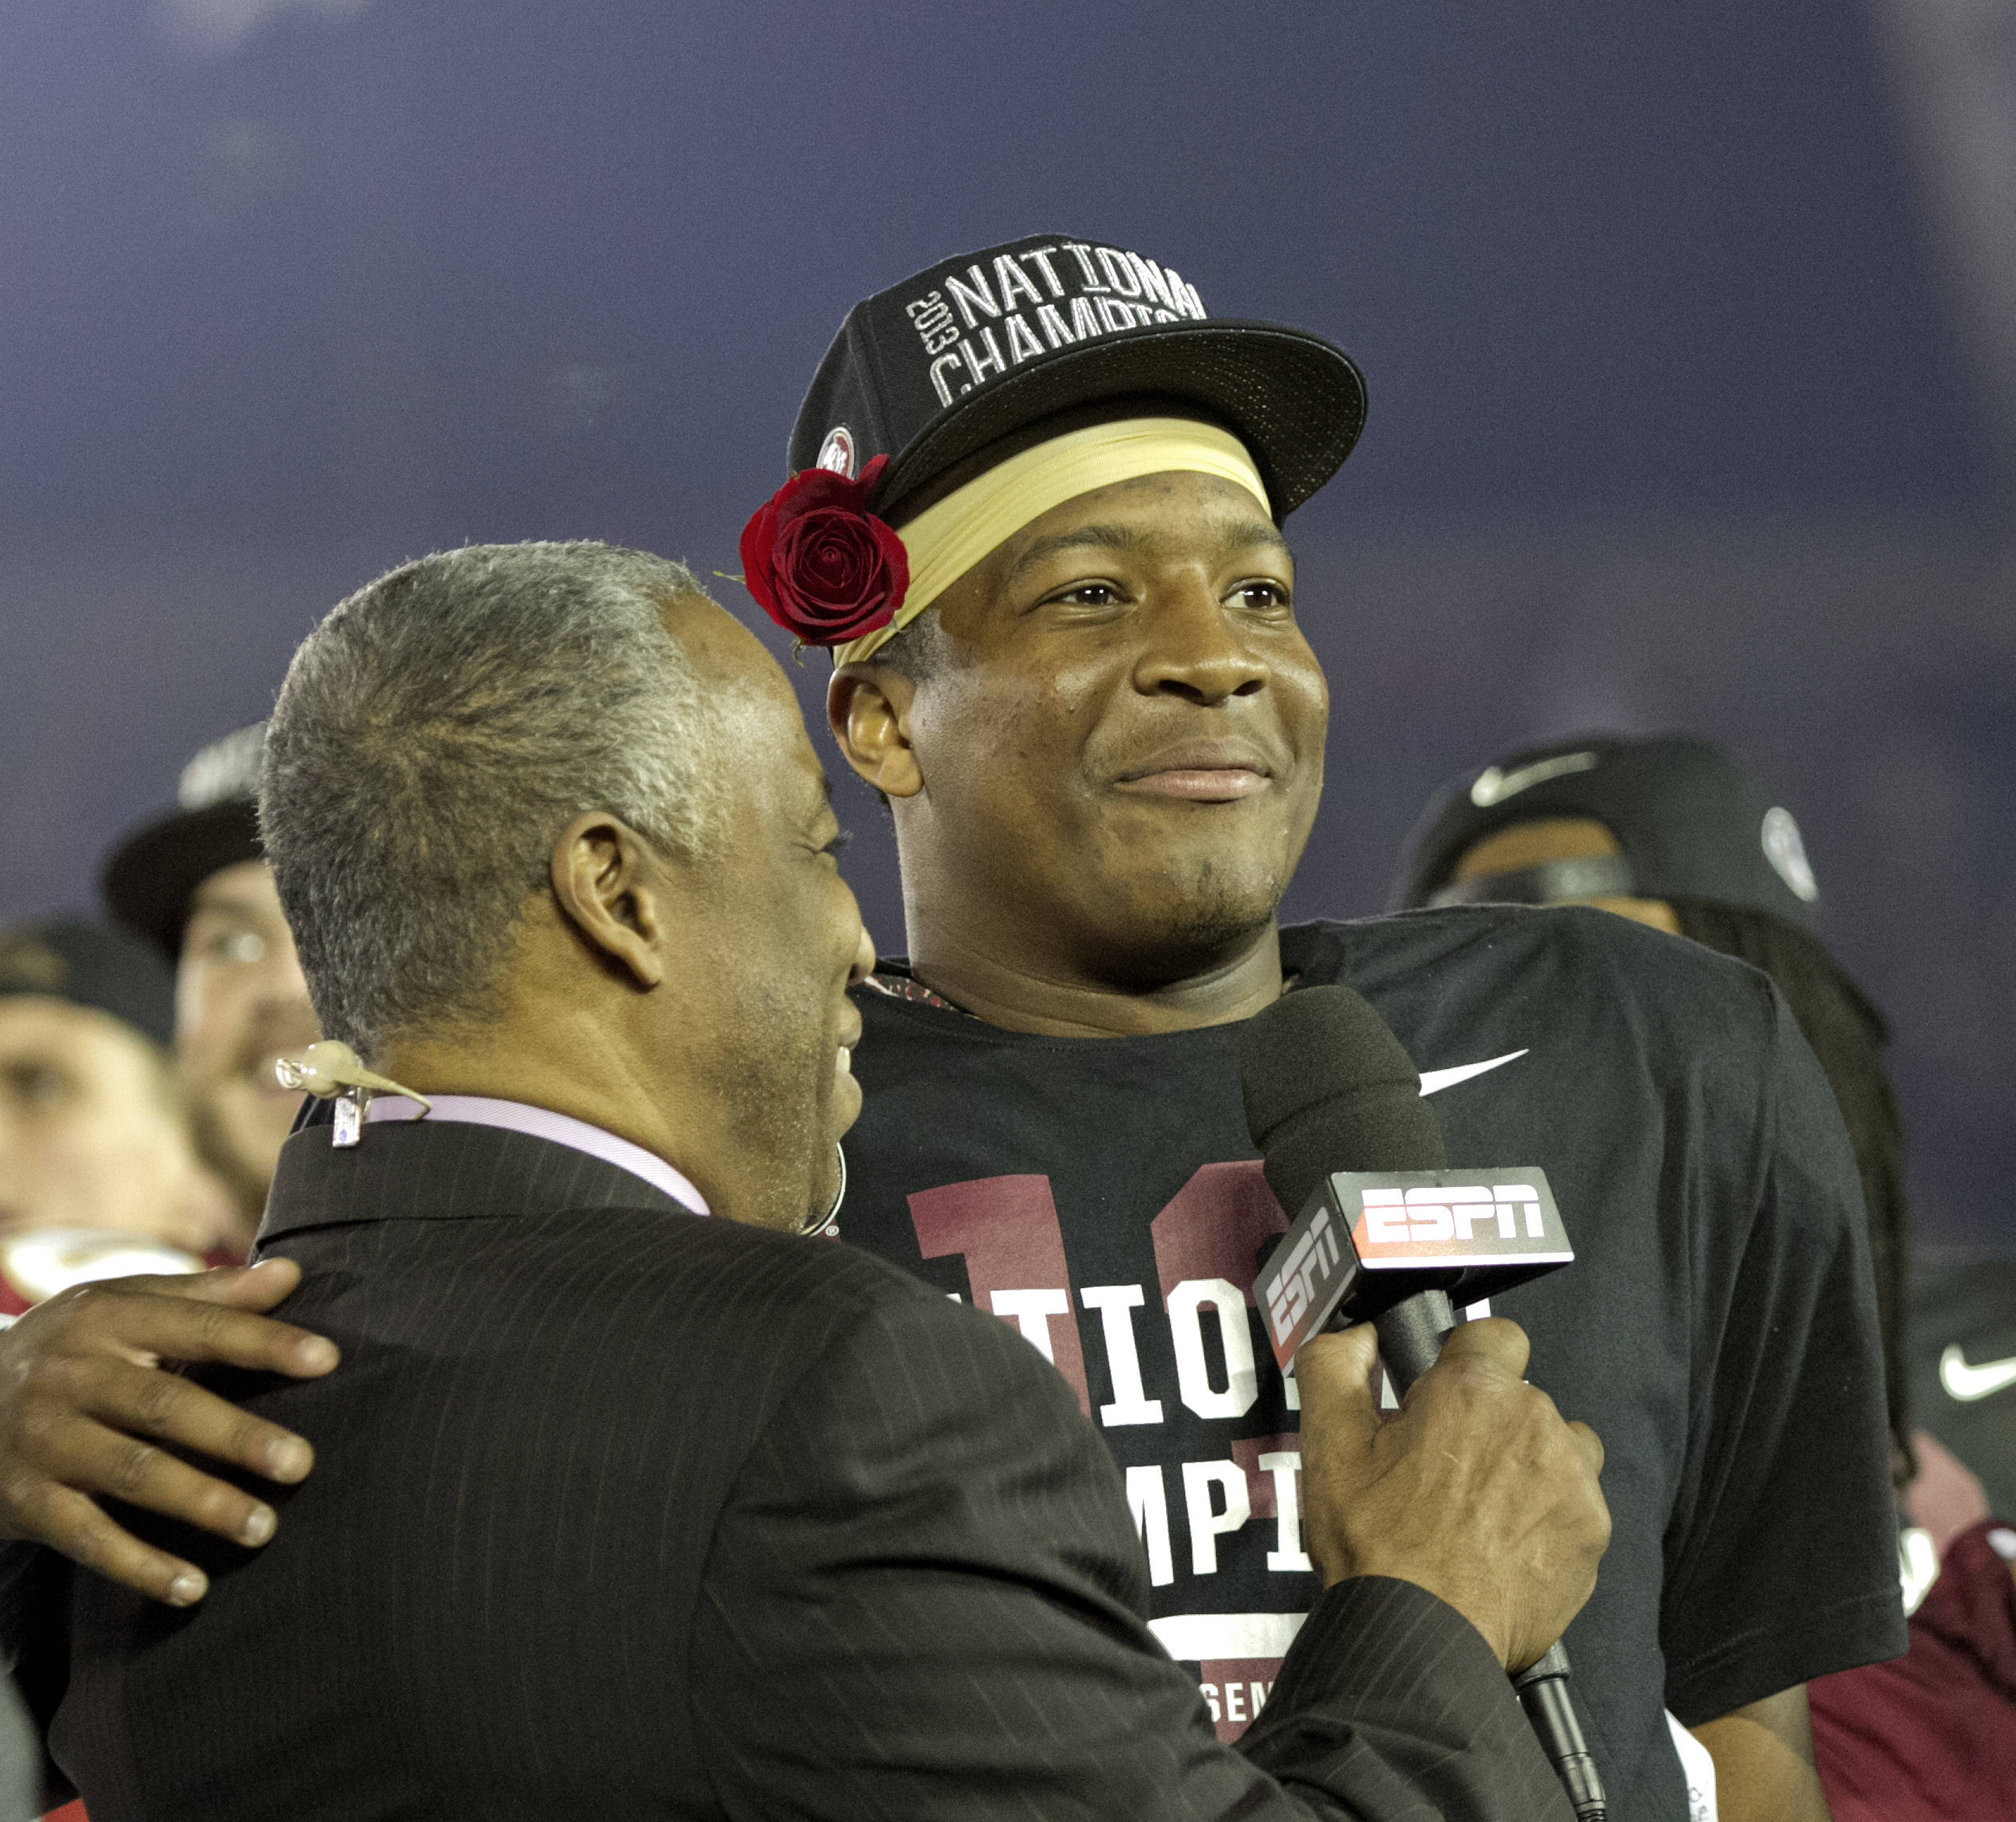 Heisman Trophy winner and BCS Championship MVP celebrating a moment with announcer Jon Saunders, BCS Championship, FSU vs Auburn, Rose Bowl, Pasadena, CA,  1-06-14,  (Photo by Steve Musco)